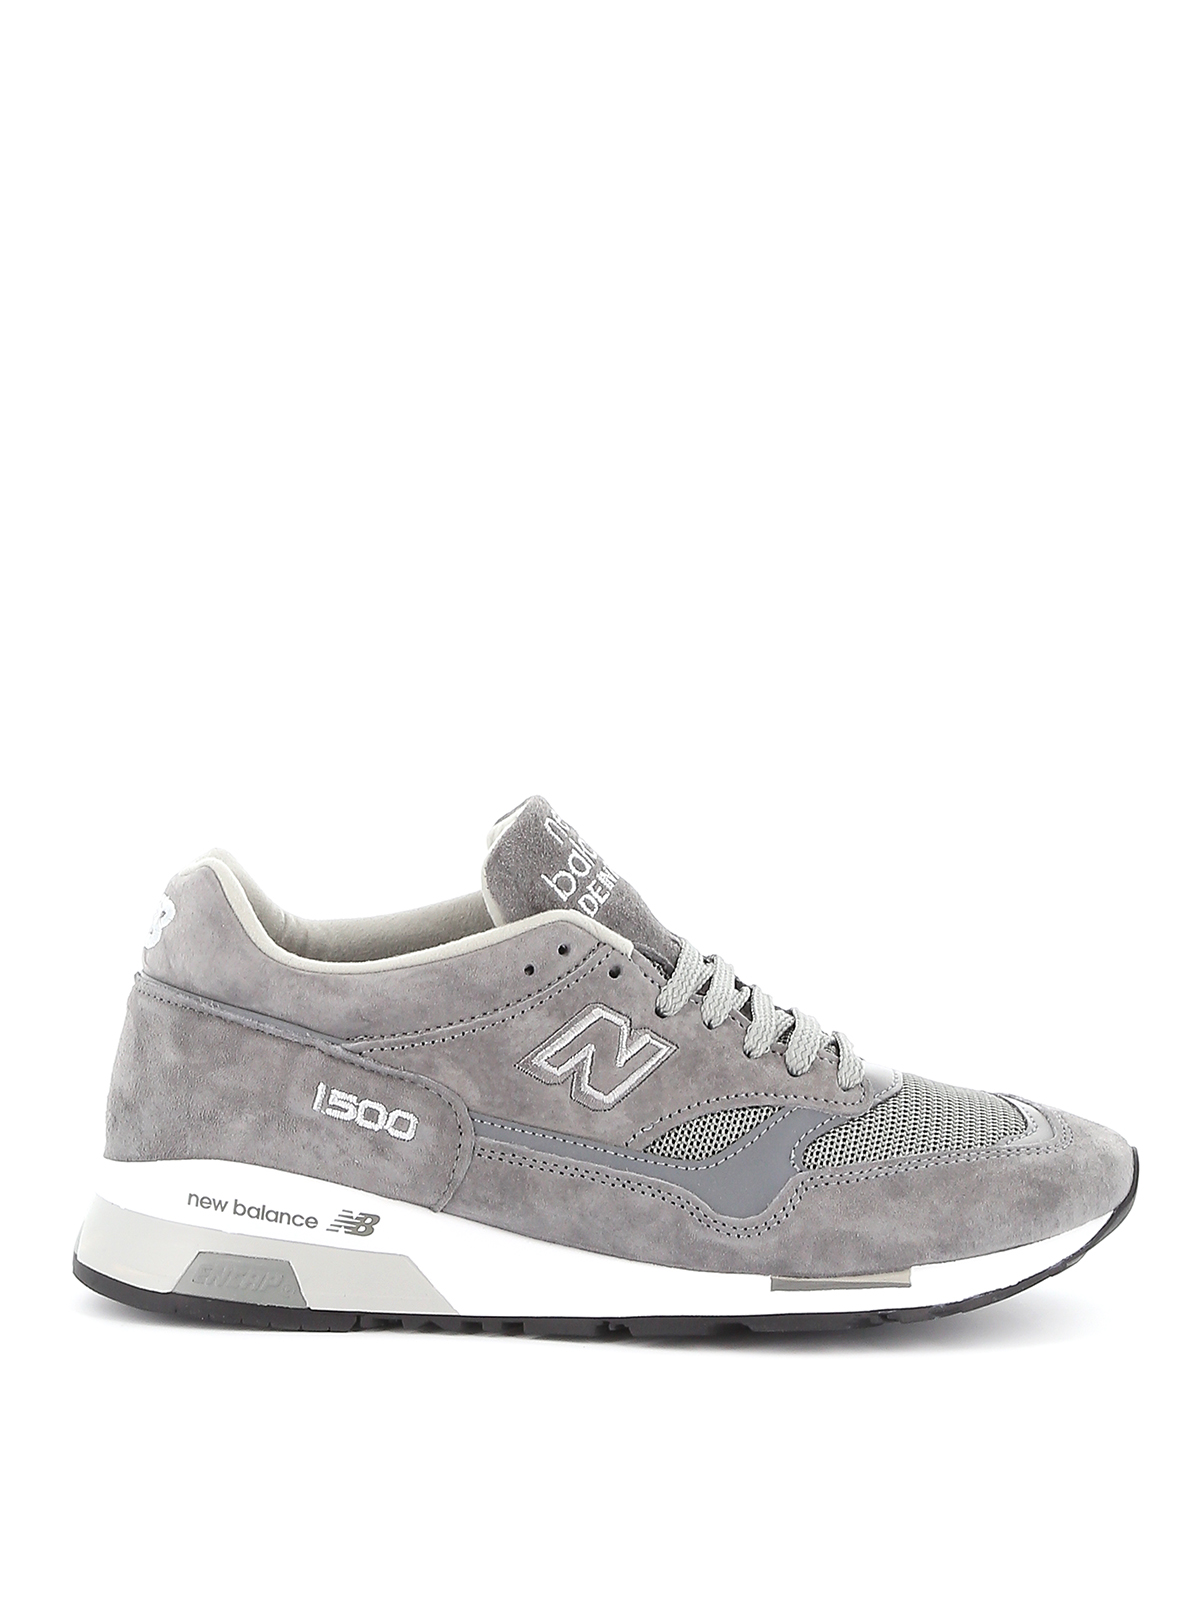 New Balance - 1500 suede sneakers